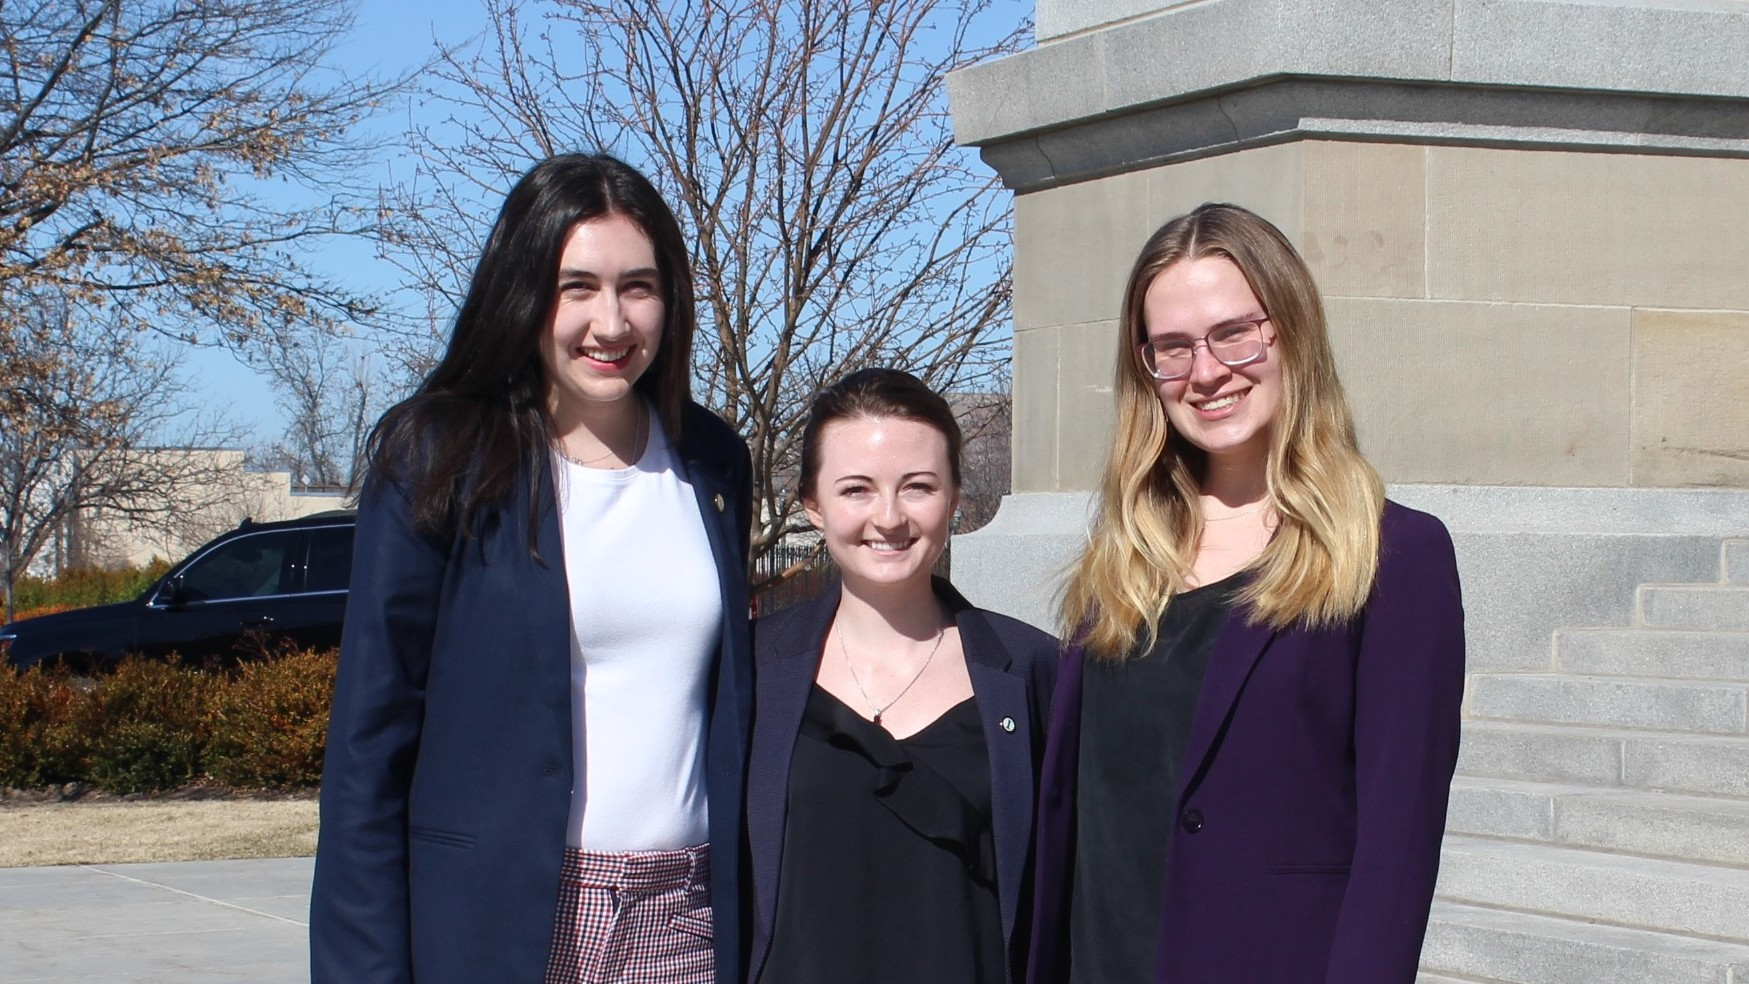 2020 McClure Legislative Research Scholars: Madeleine Curtright, Megan Smith and Mary Alice Taylor